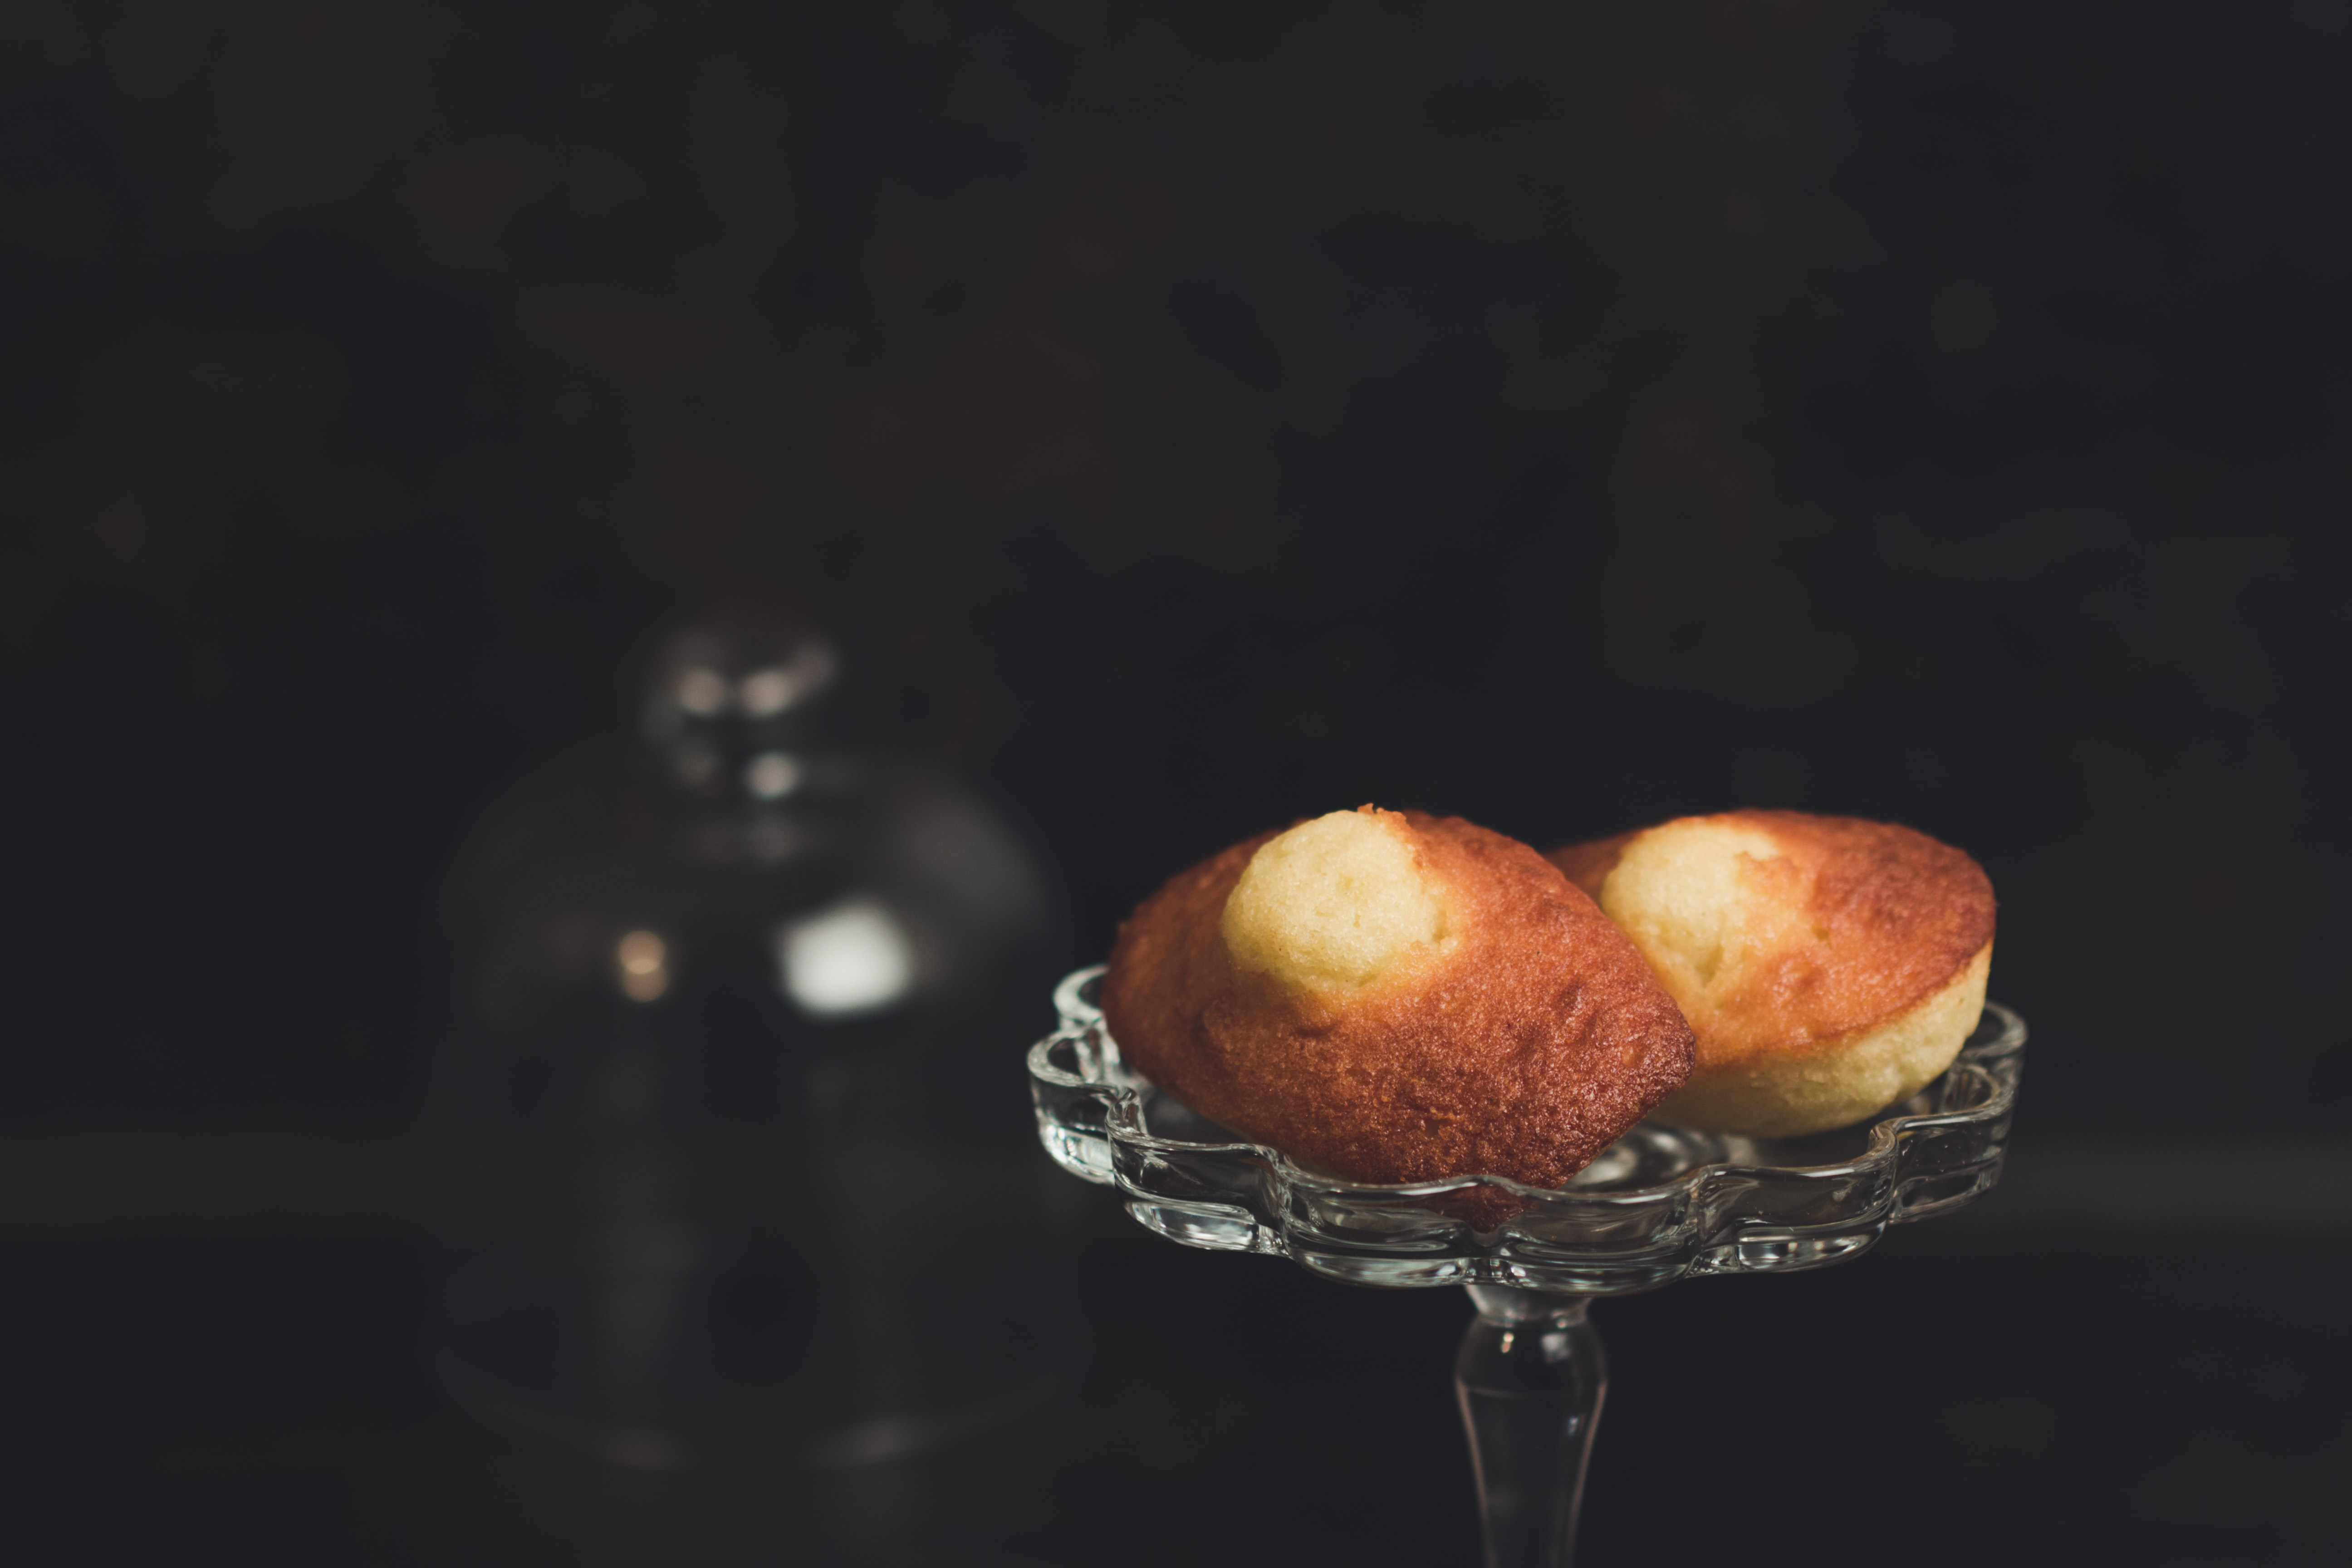 two baked breads placed on clear glass cupcake stand in focus photography